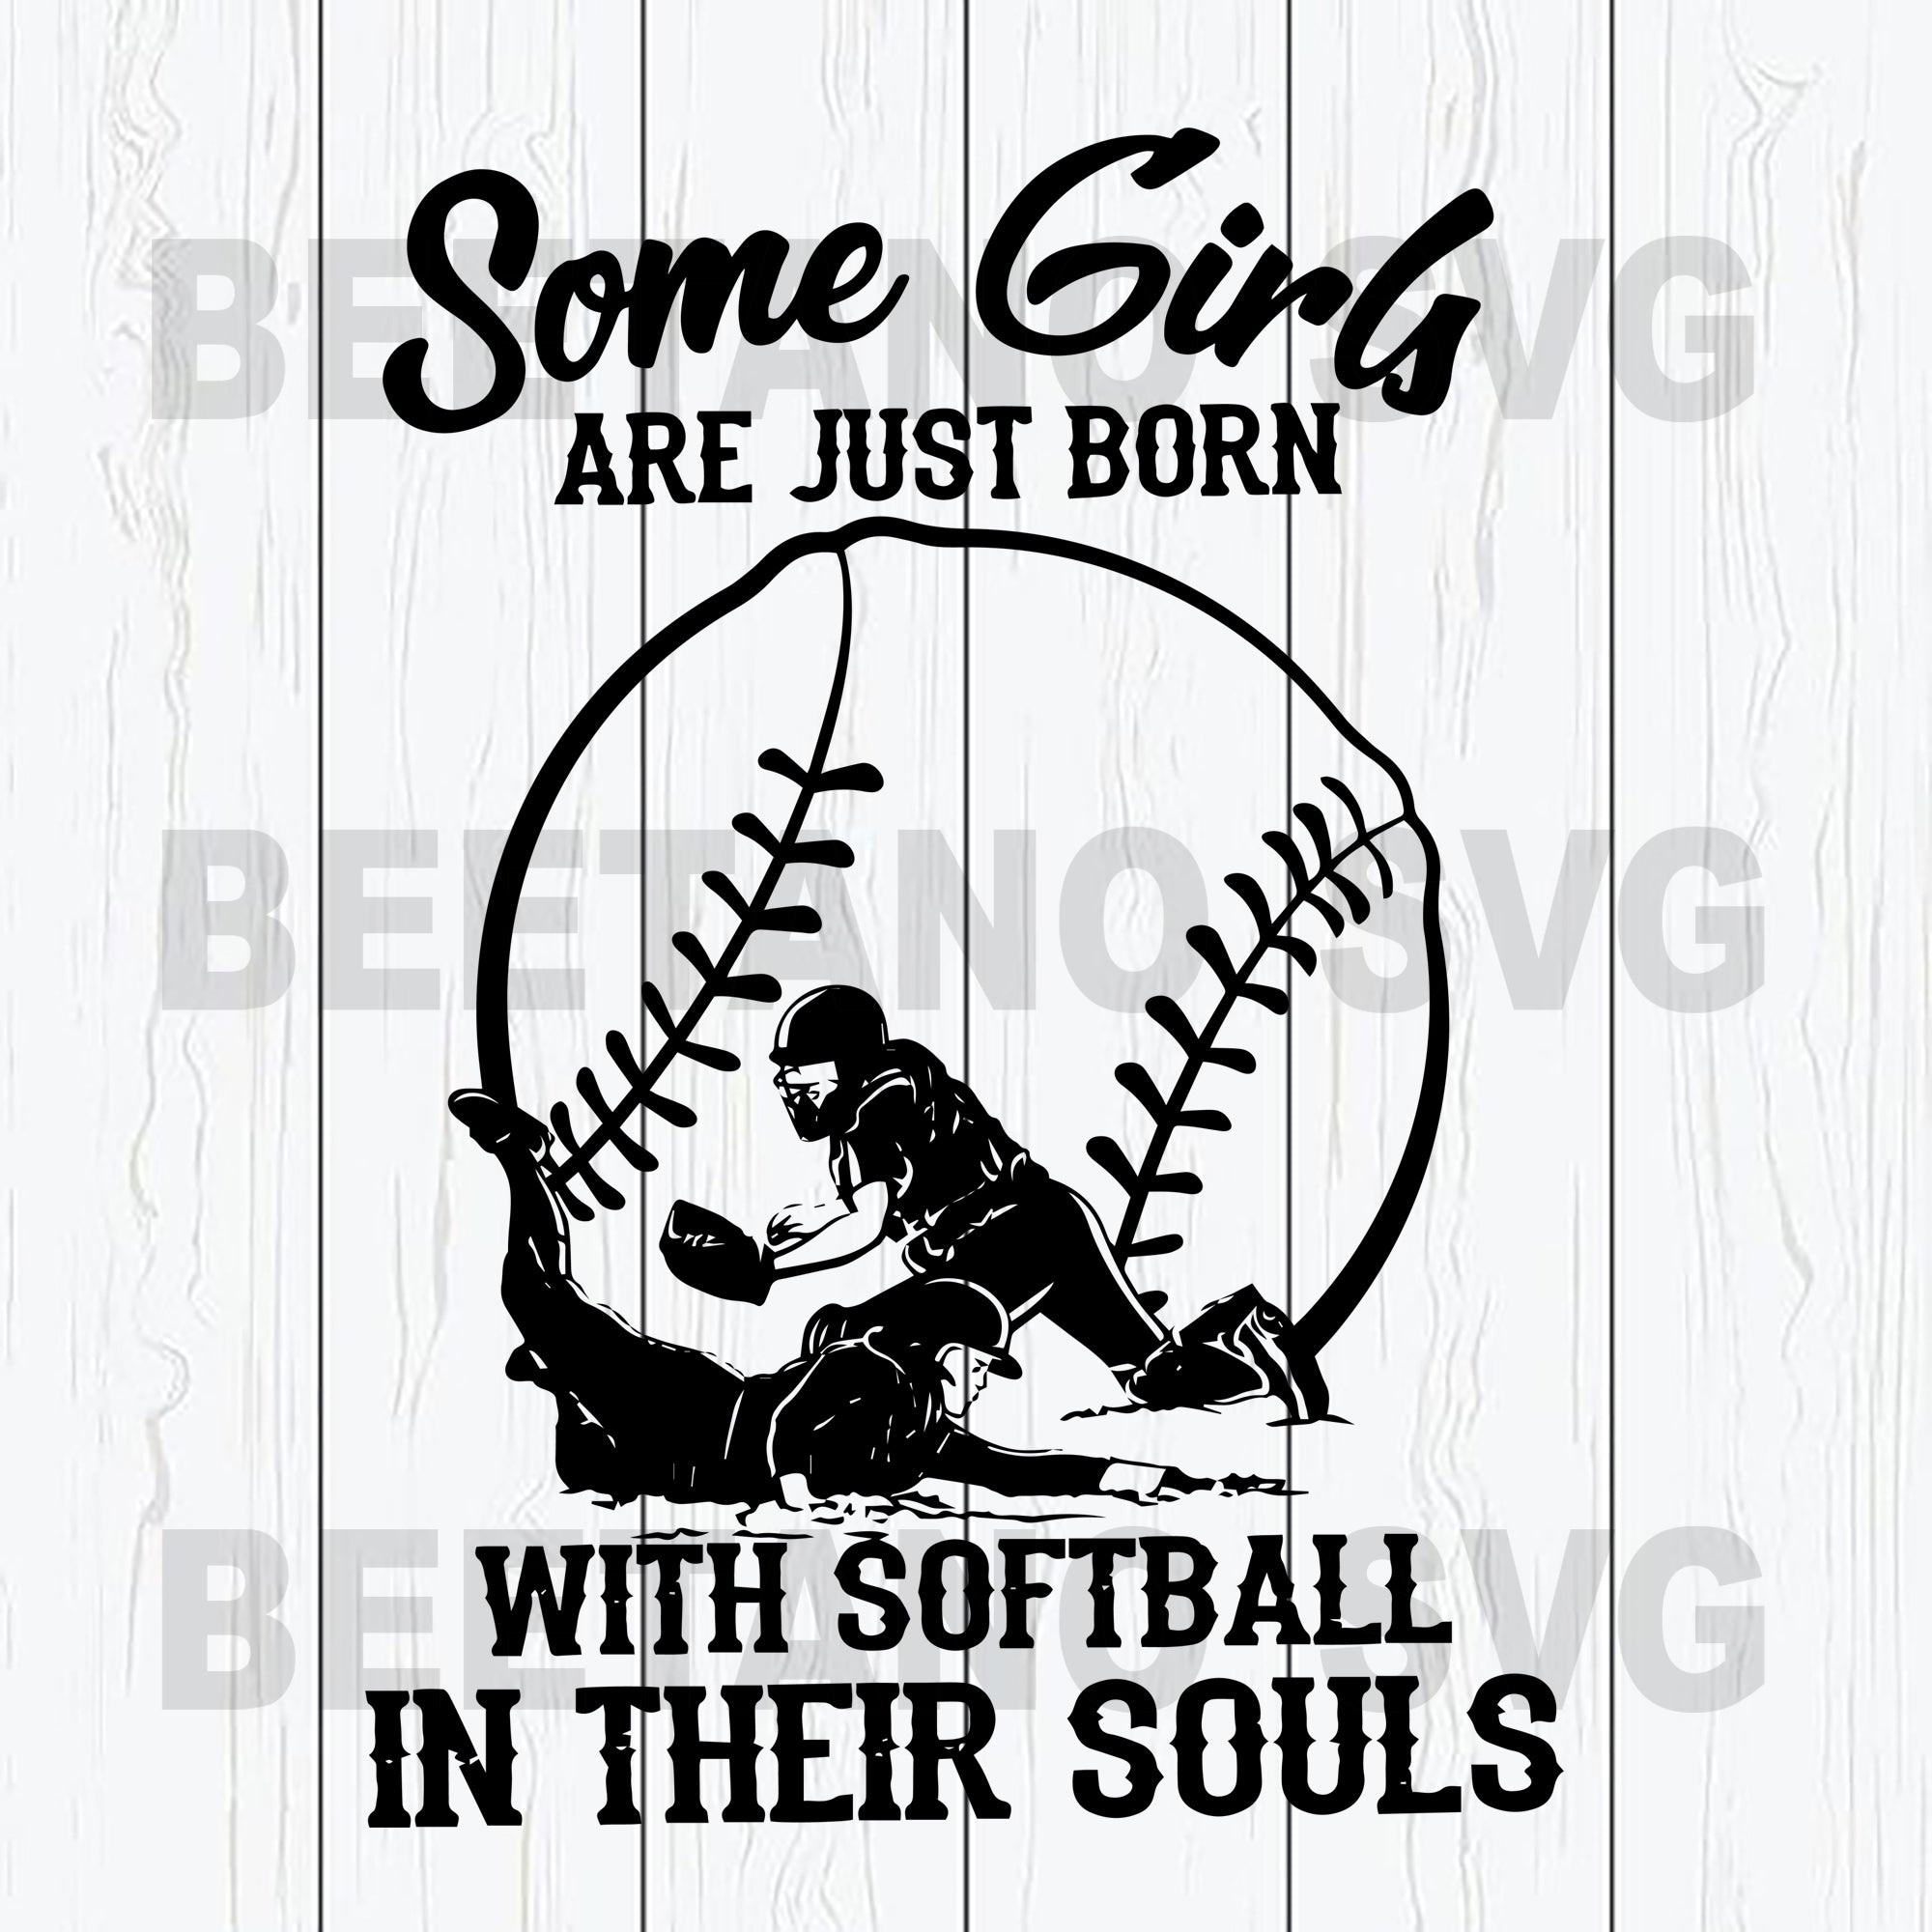 Some Girl Are Just Born With Softball In Their Souls